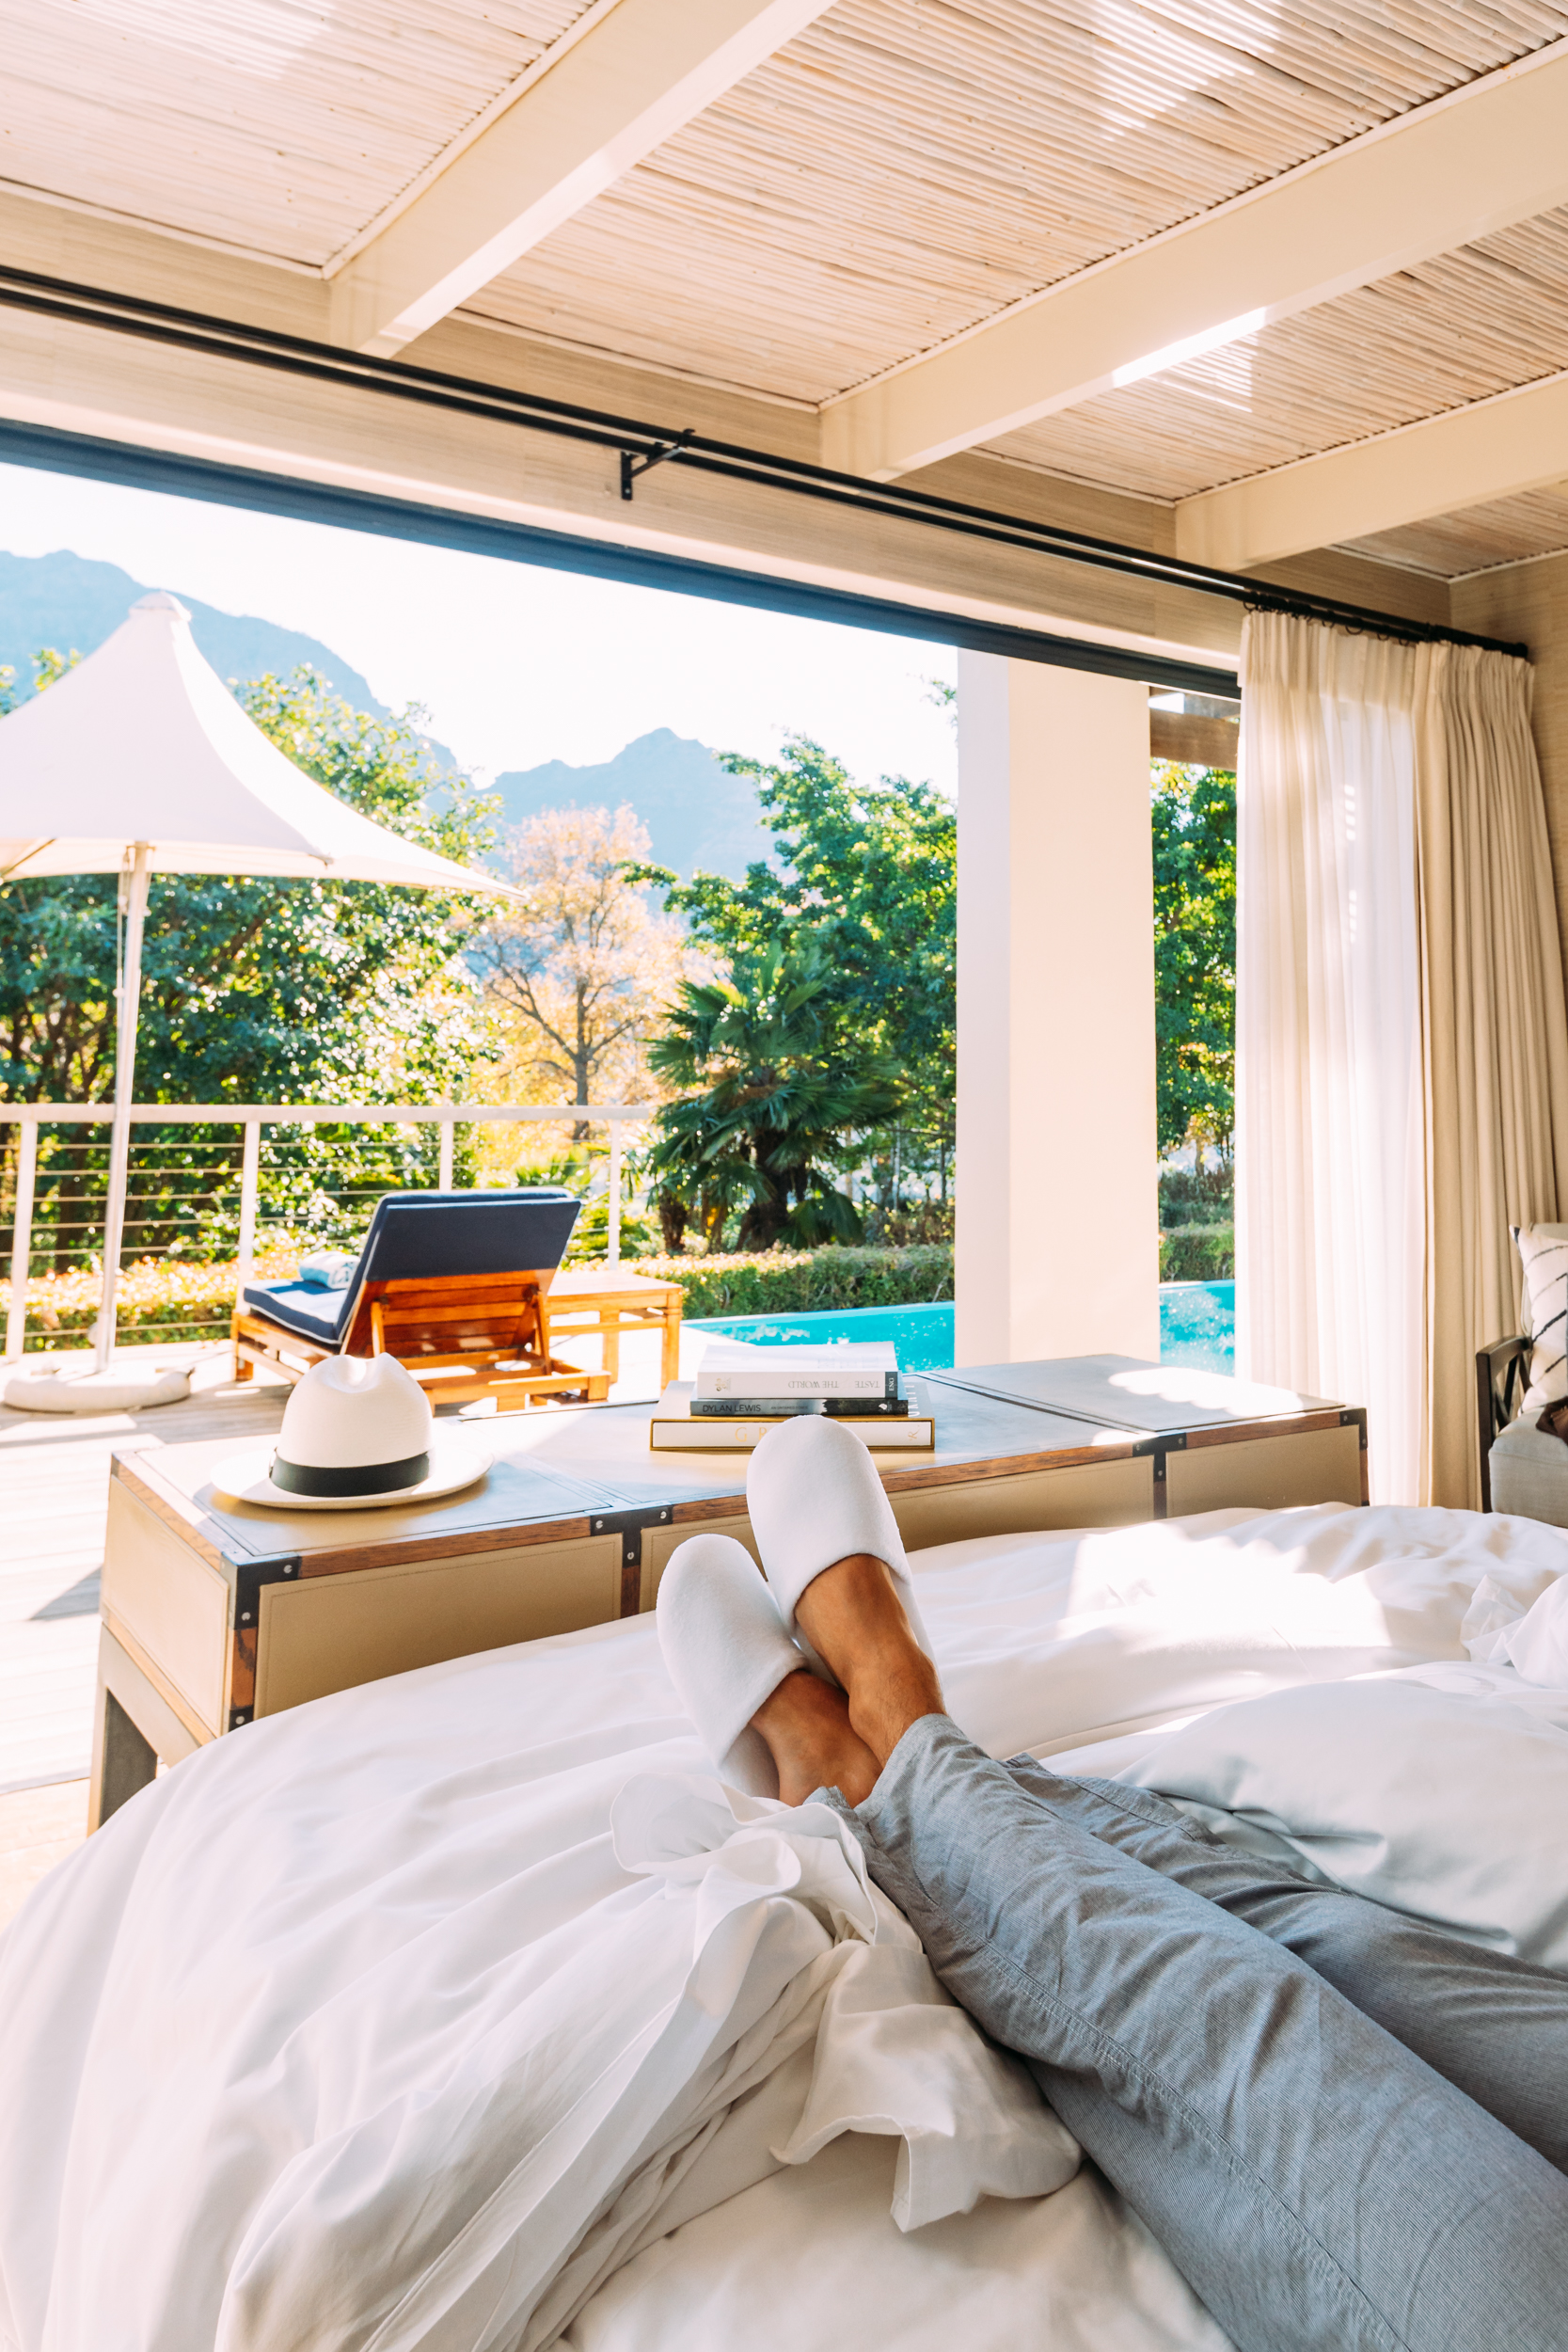 A man with his feet up in bed with plush slippers enjoying the view from the Presidential Lodge at Delaire Graff Lodges & Spa